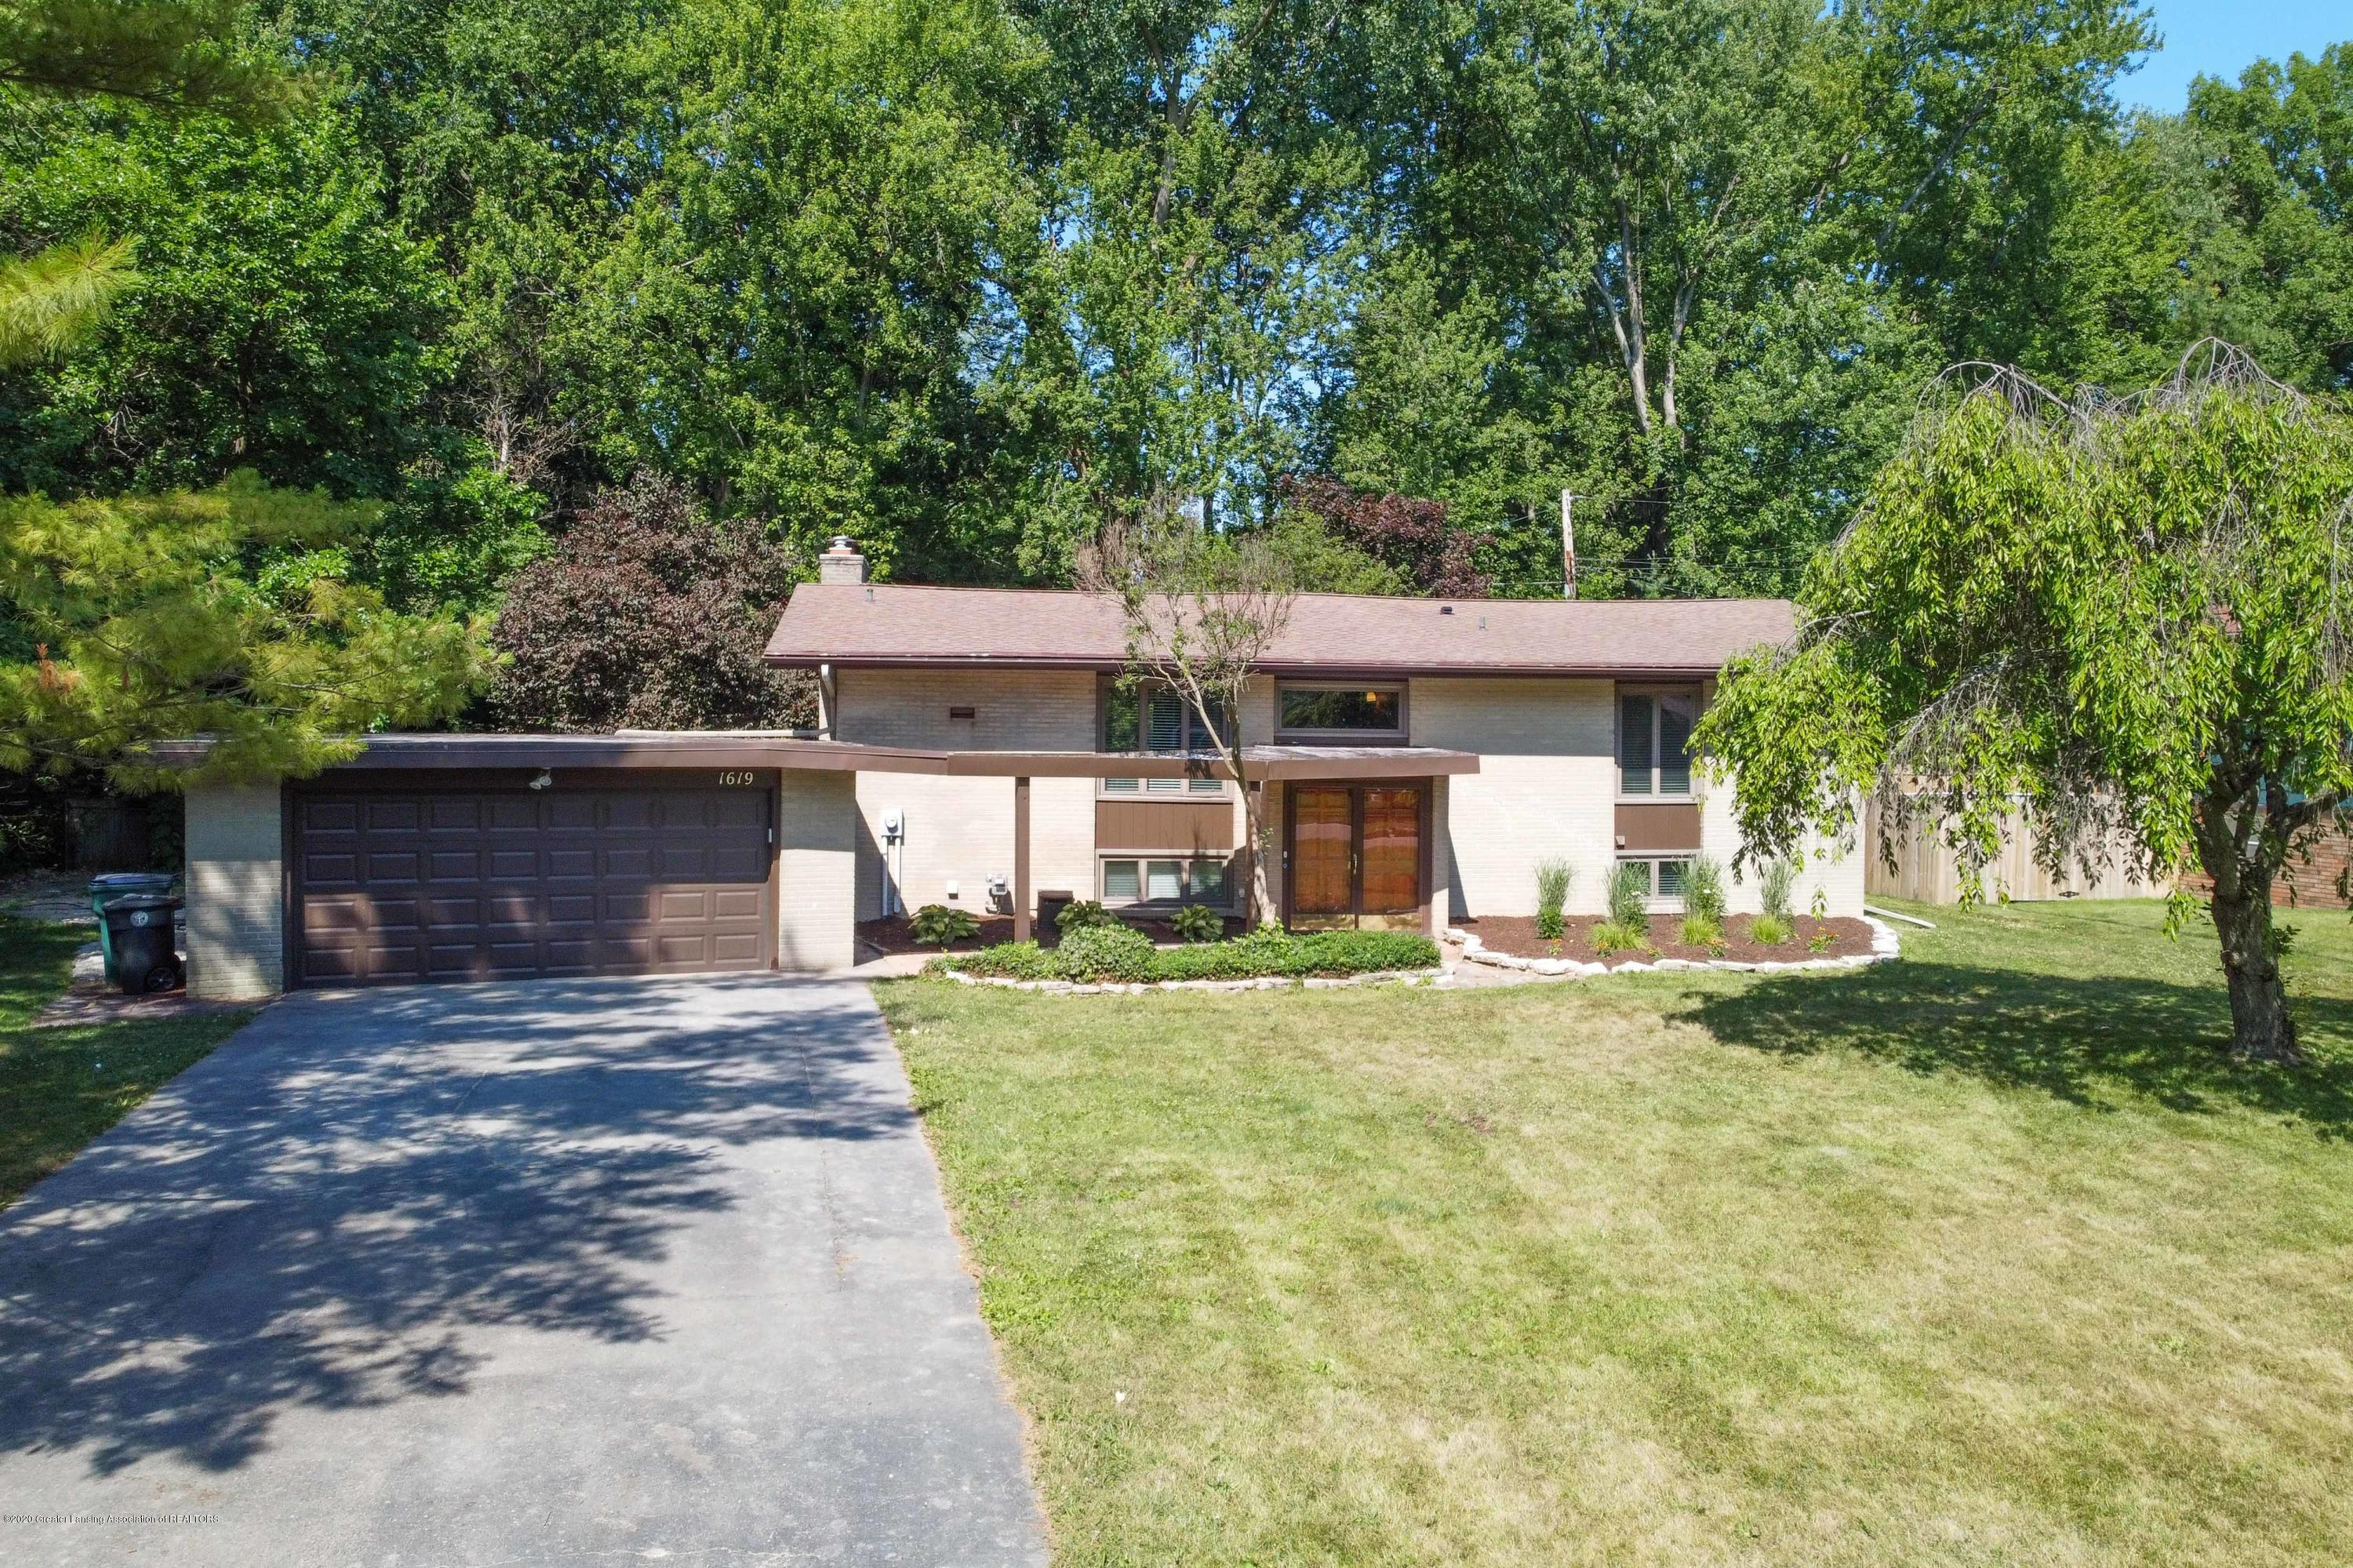 1619 Gilcrest Ave - 1619GilcrestAve-5 - 1